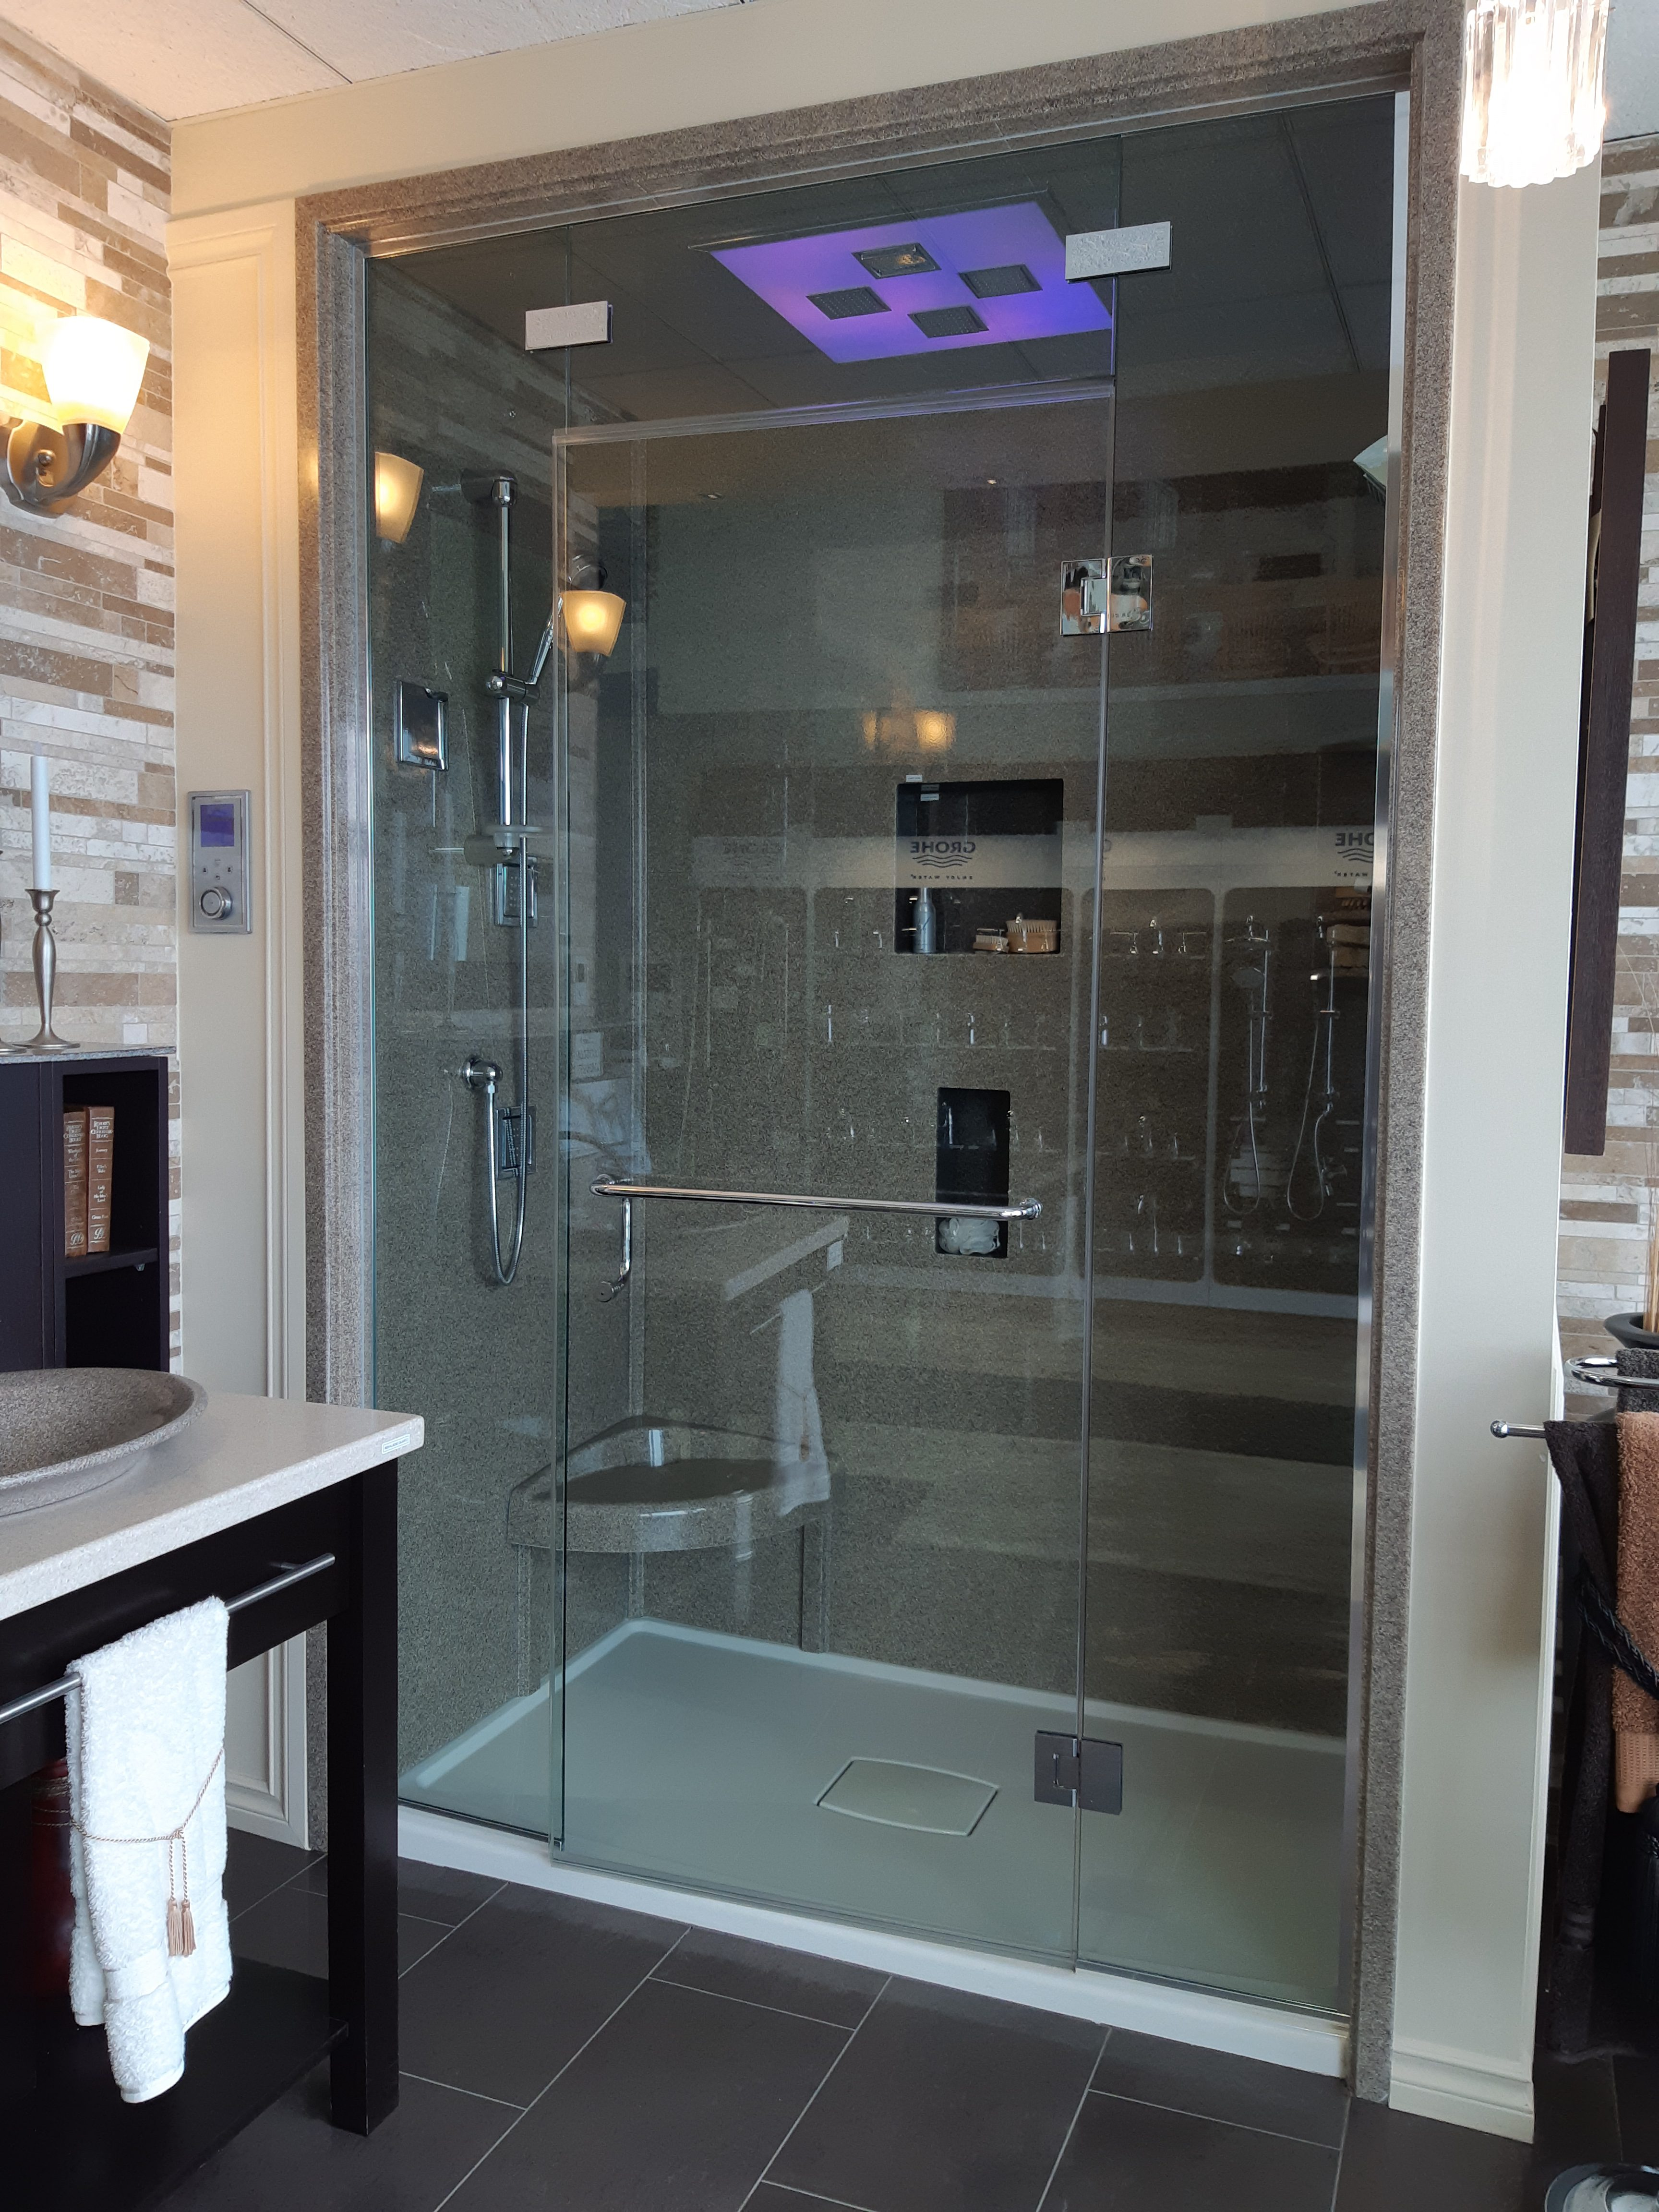 Steam Showers - Edmonton - Independent bath - picture outside of steam shower